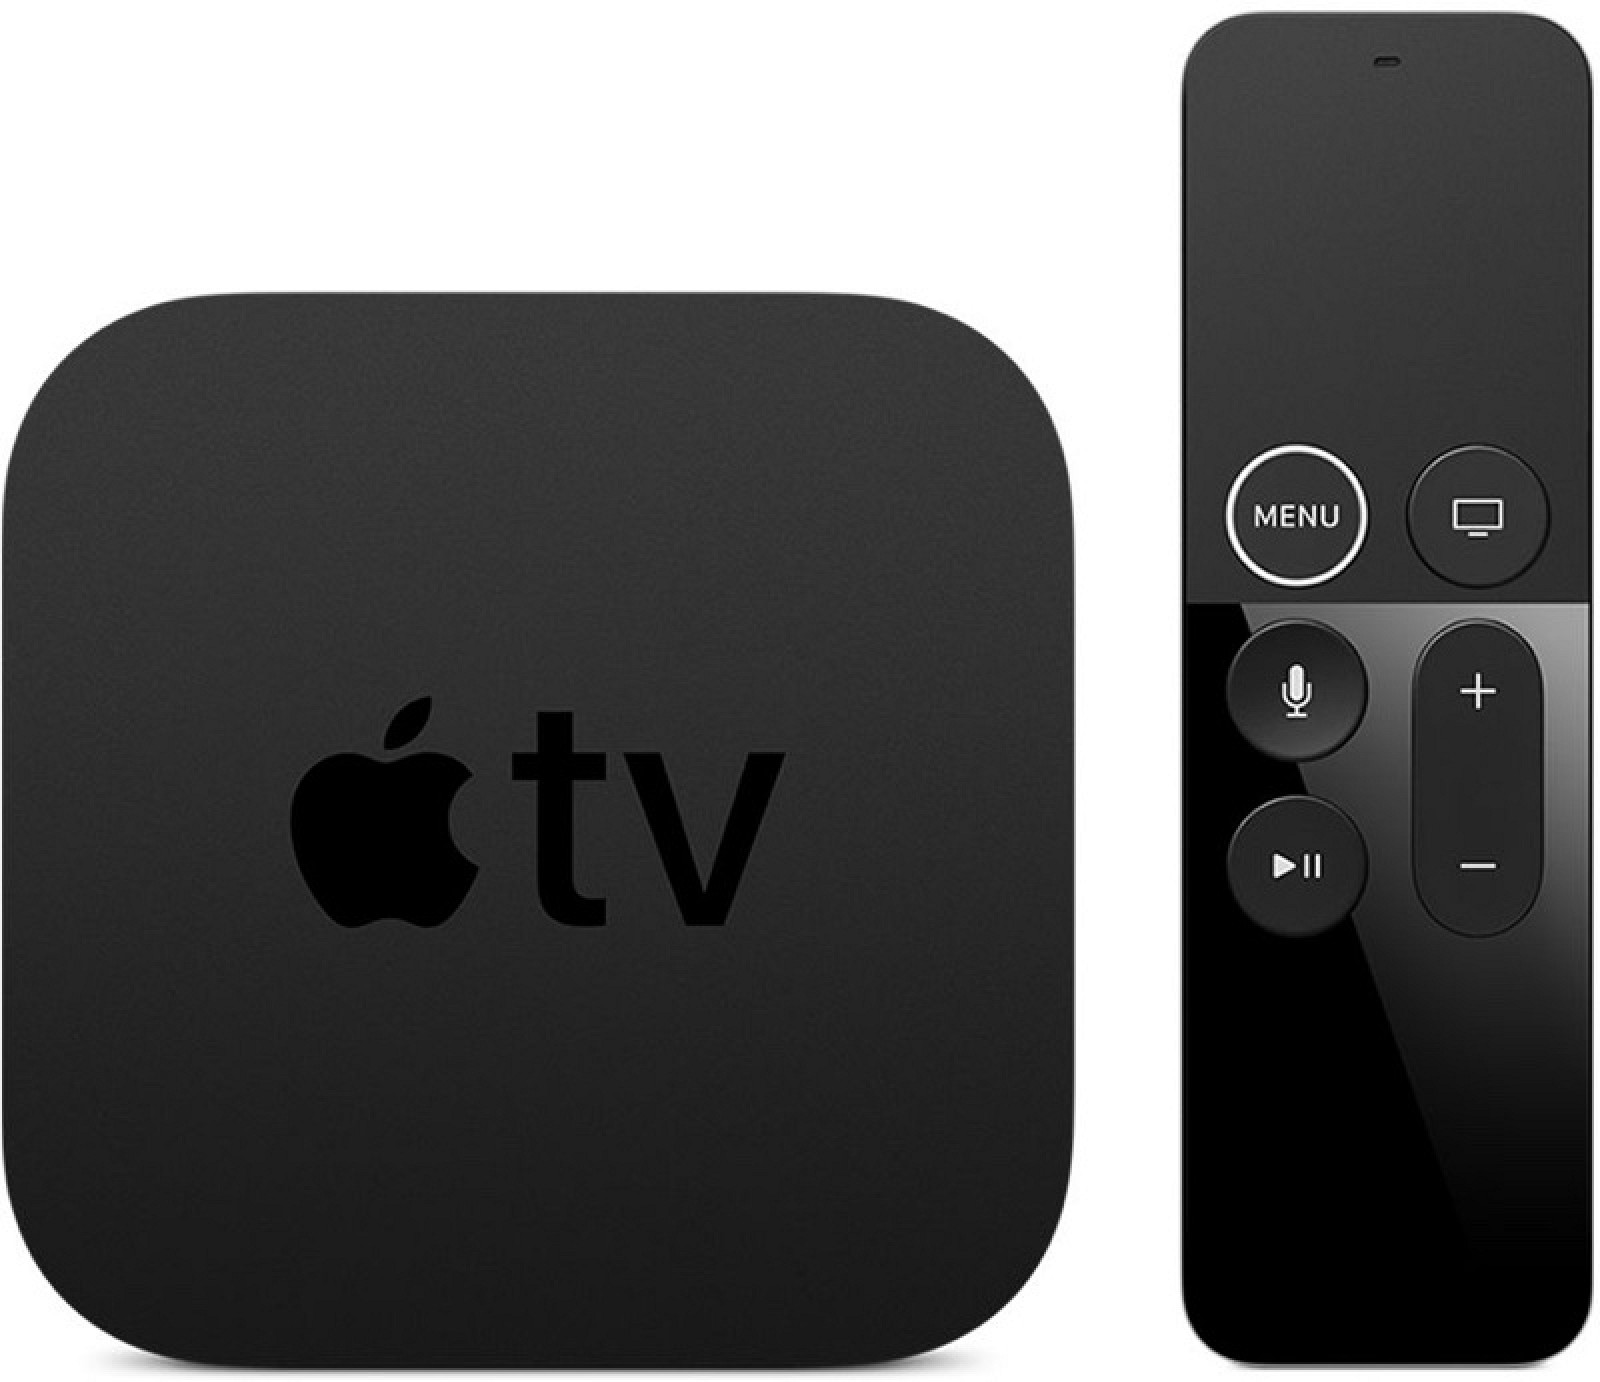 Apple TV Gaining Traction in 4K Streaming Device Market